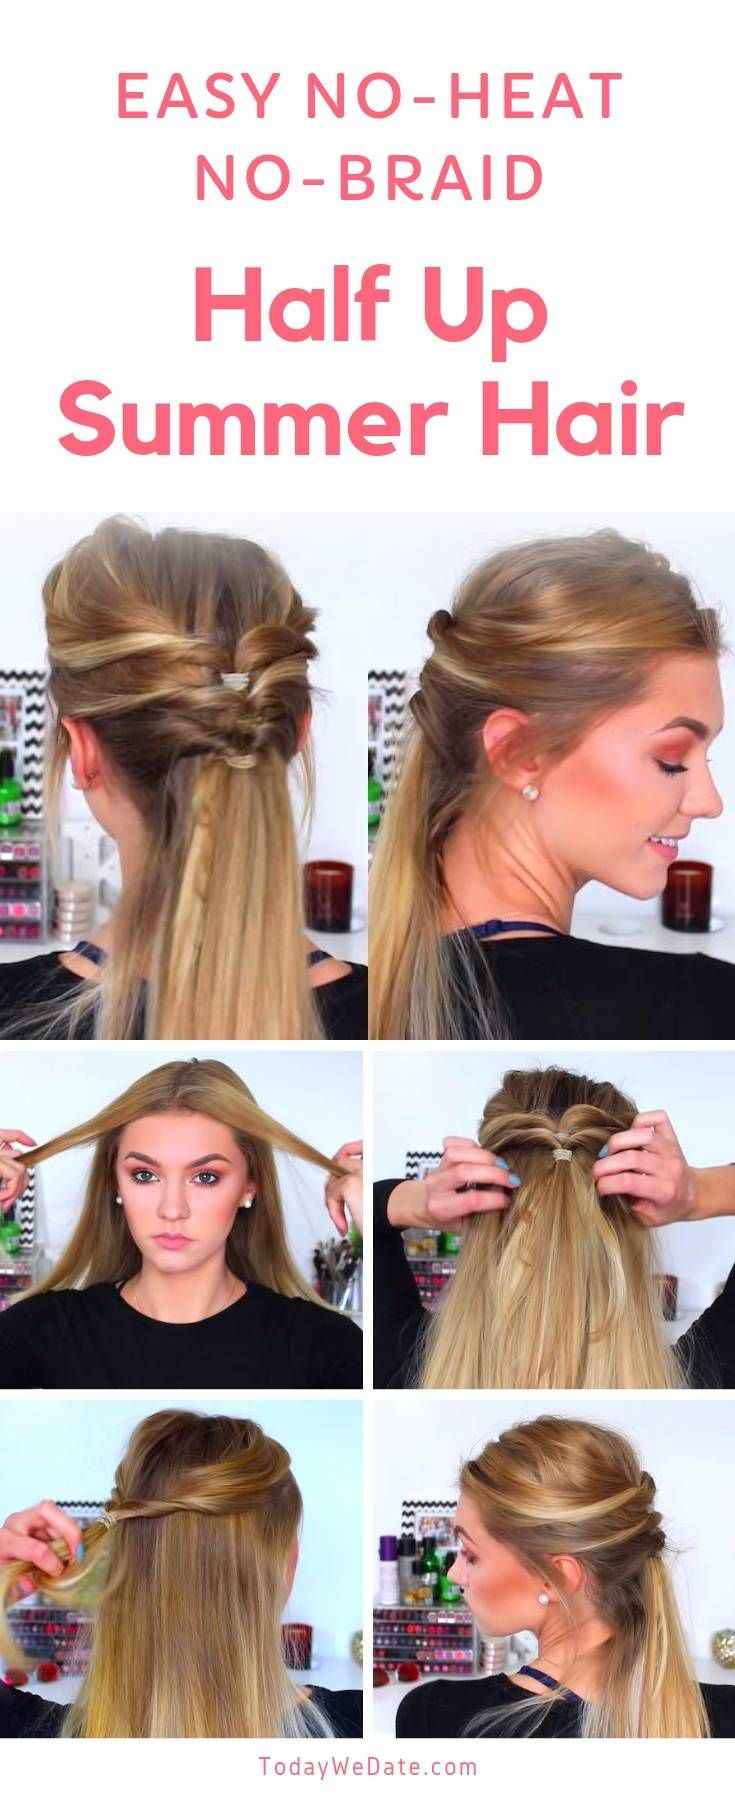 7 No Heat Easy Summer Hairstyles Anyone Can Pull Off In 5 Minutes Todaywedate Com Cute Summer Hair Summer Hairstyles Easy Hairstyles Braids For Short Hair